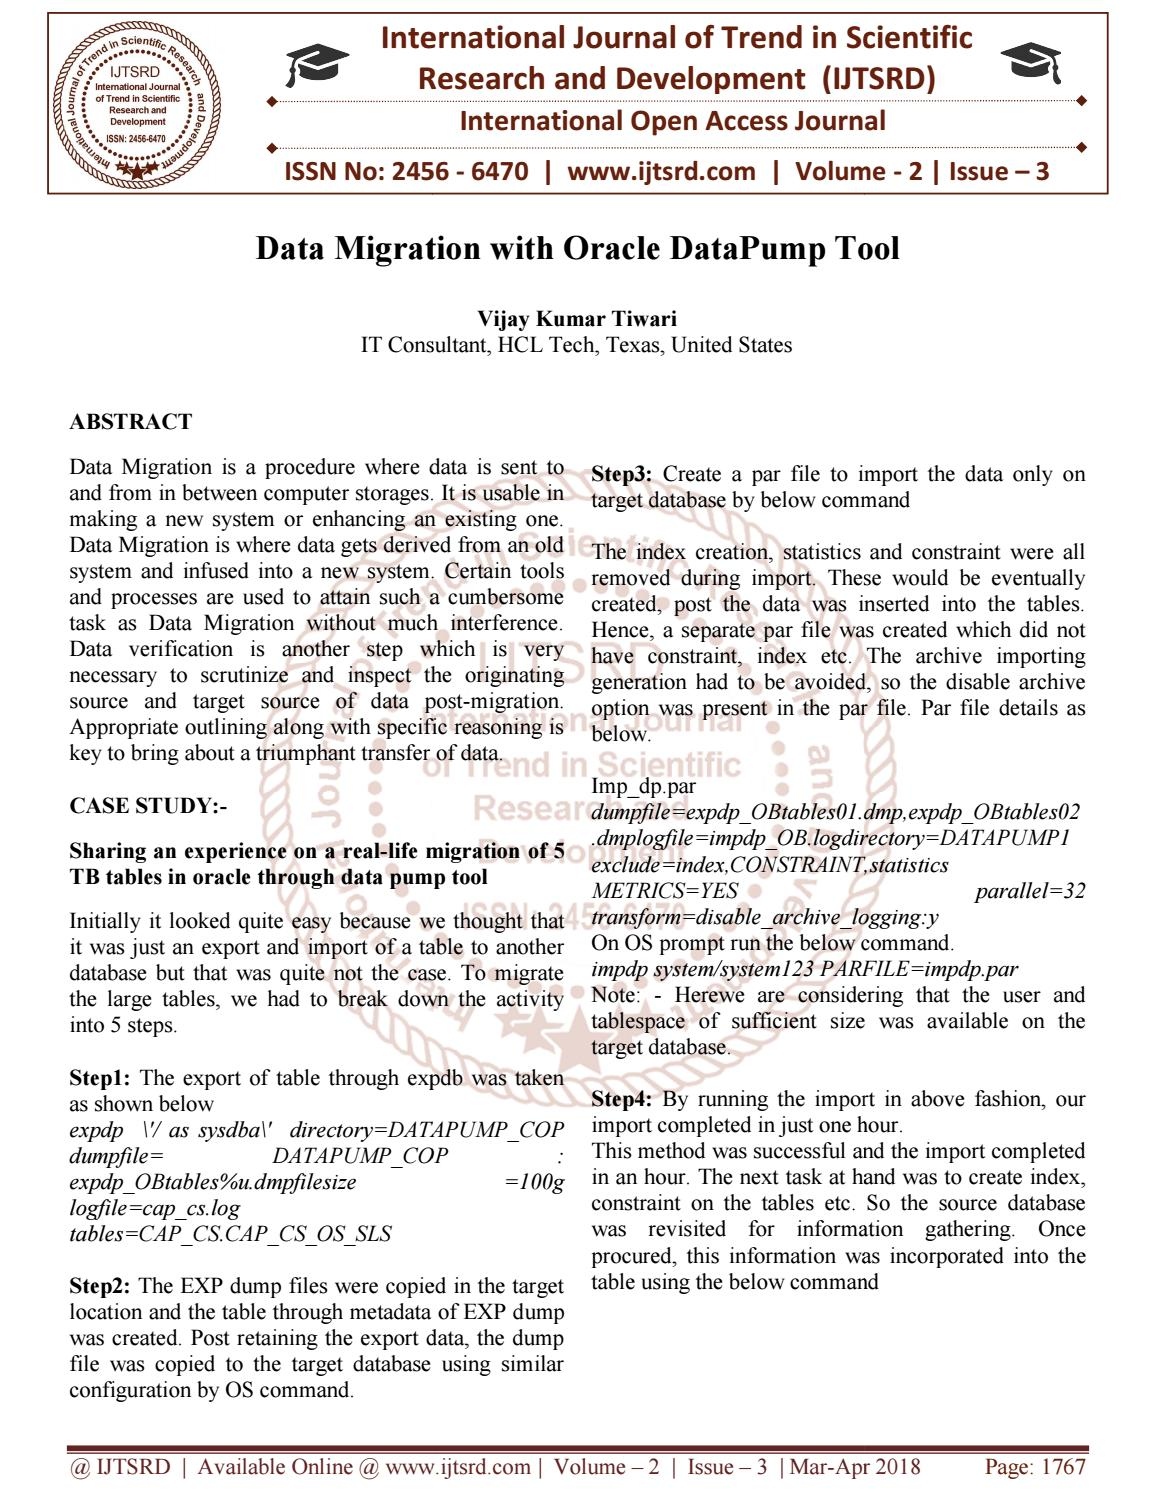 Data Migration With Oracle DataPump Tool by International Journal of